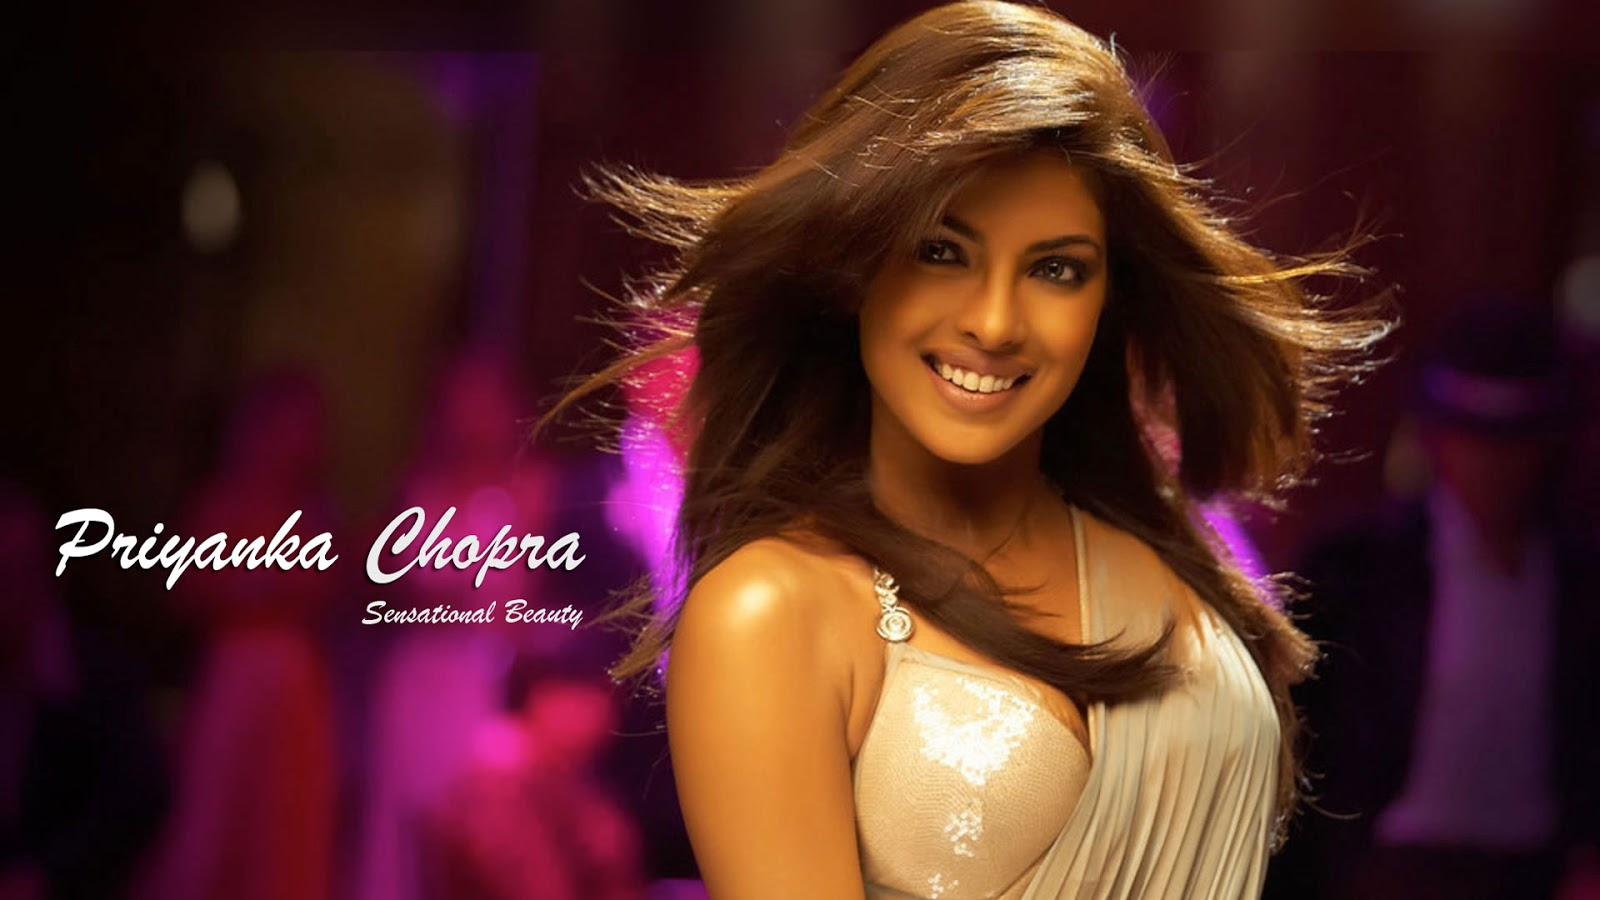 Priyanka Chopra Hd Wallpapers-2635